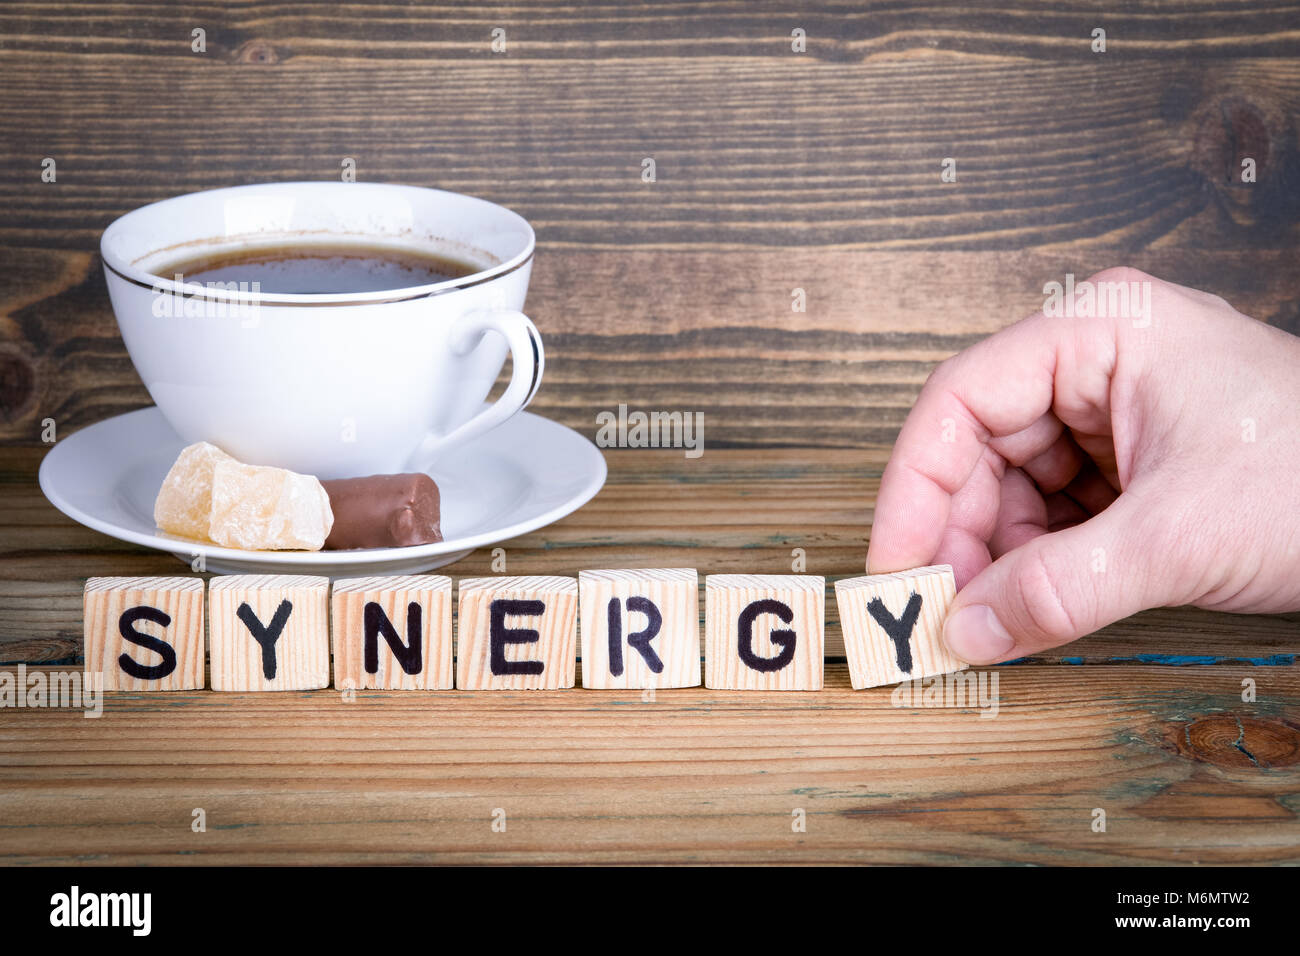 synergy. Wooden letters on the office desk, informative and communication background Stock Photo